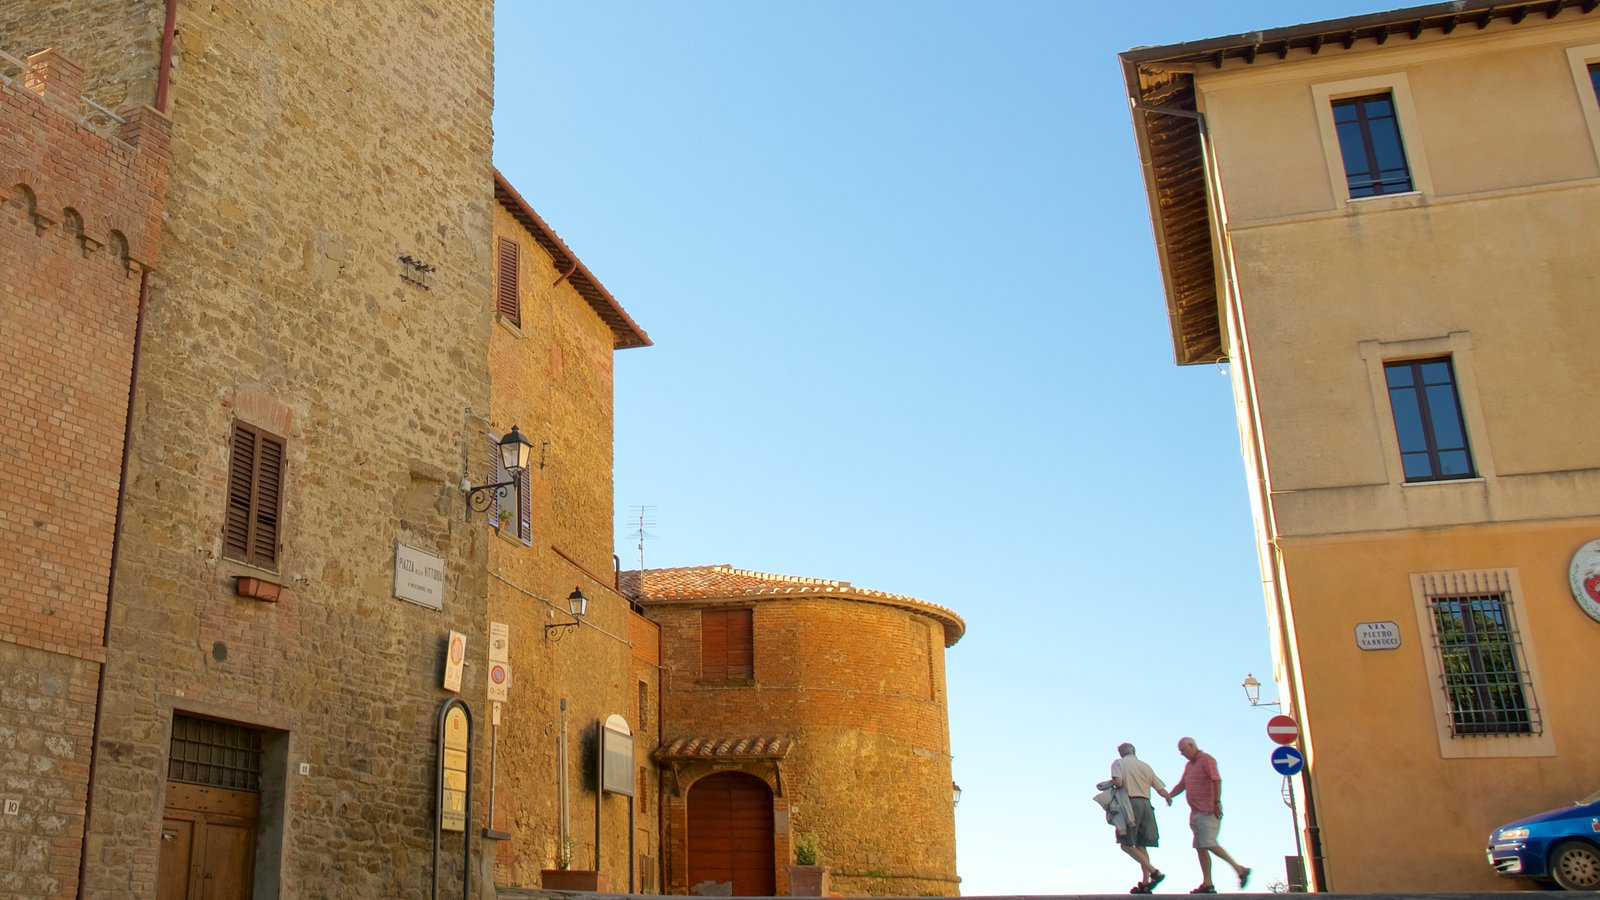 Panicale showing heritage architecture as well as a couple